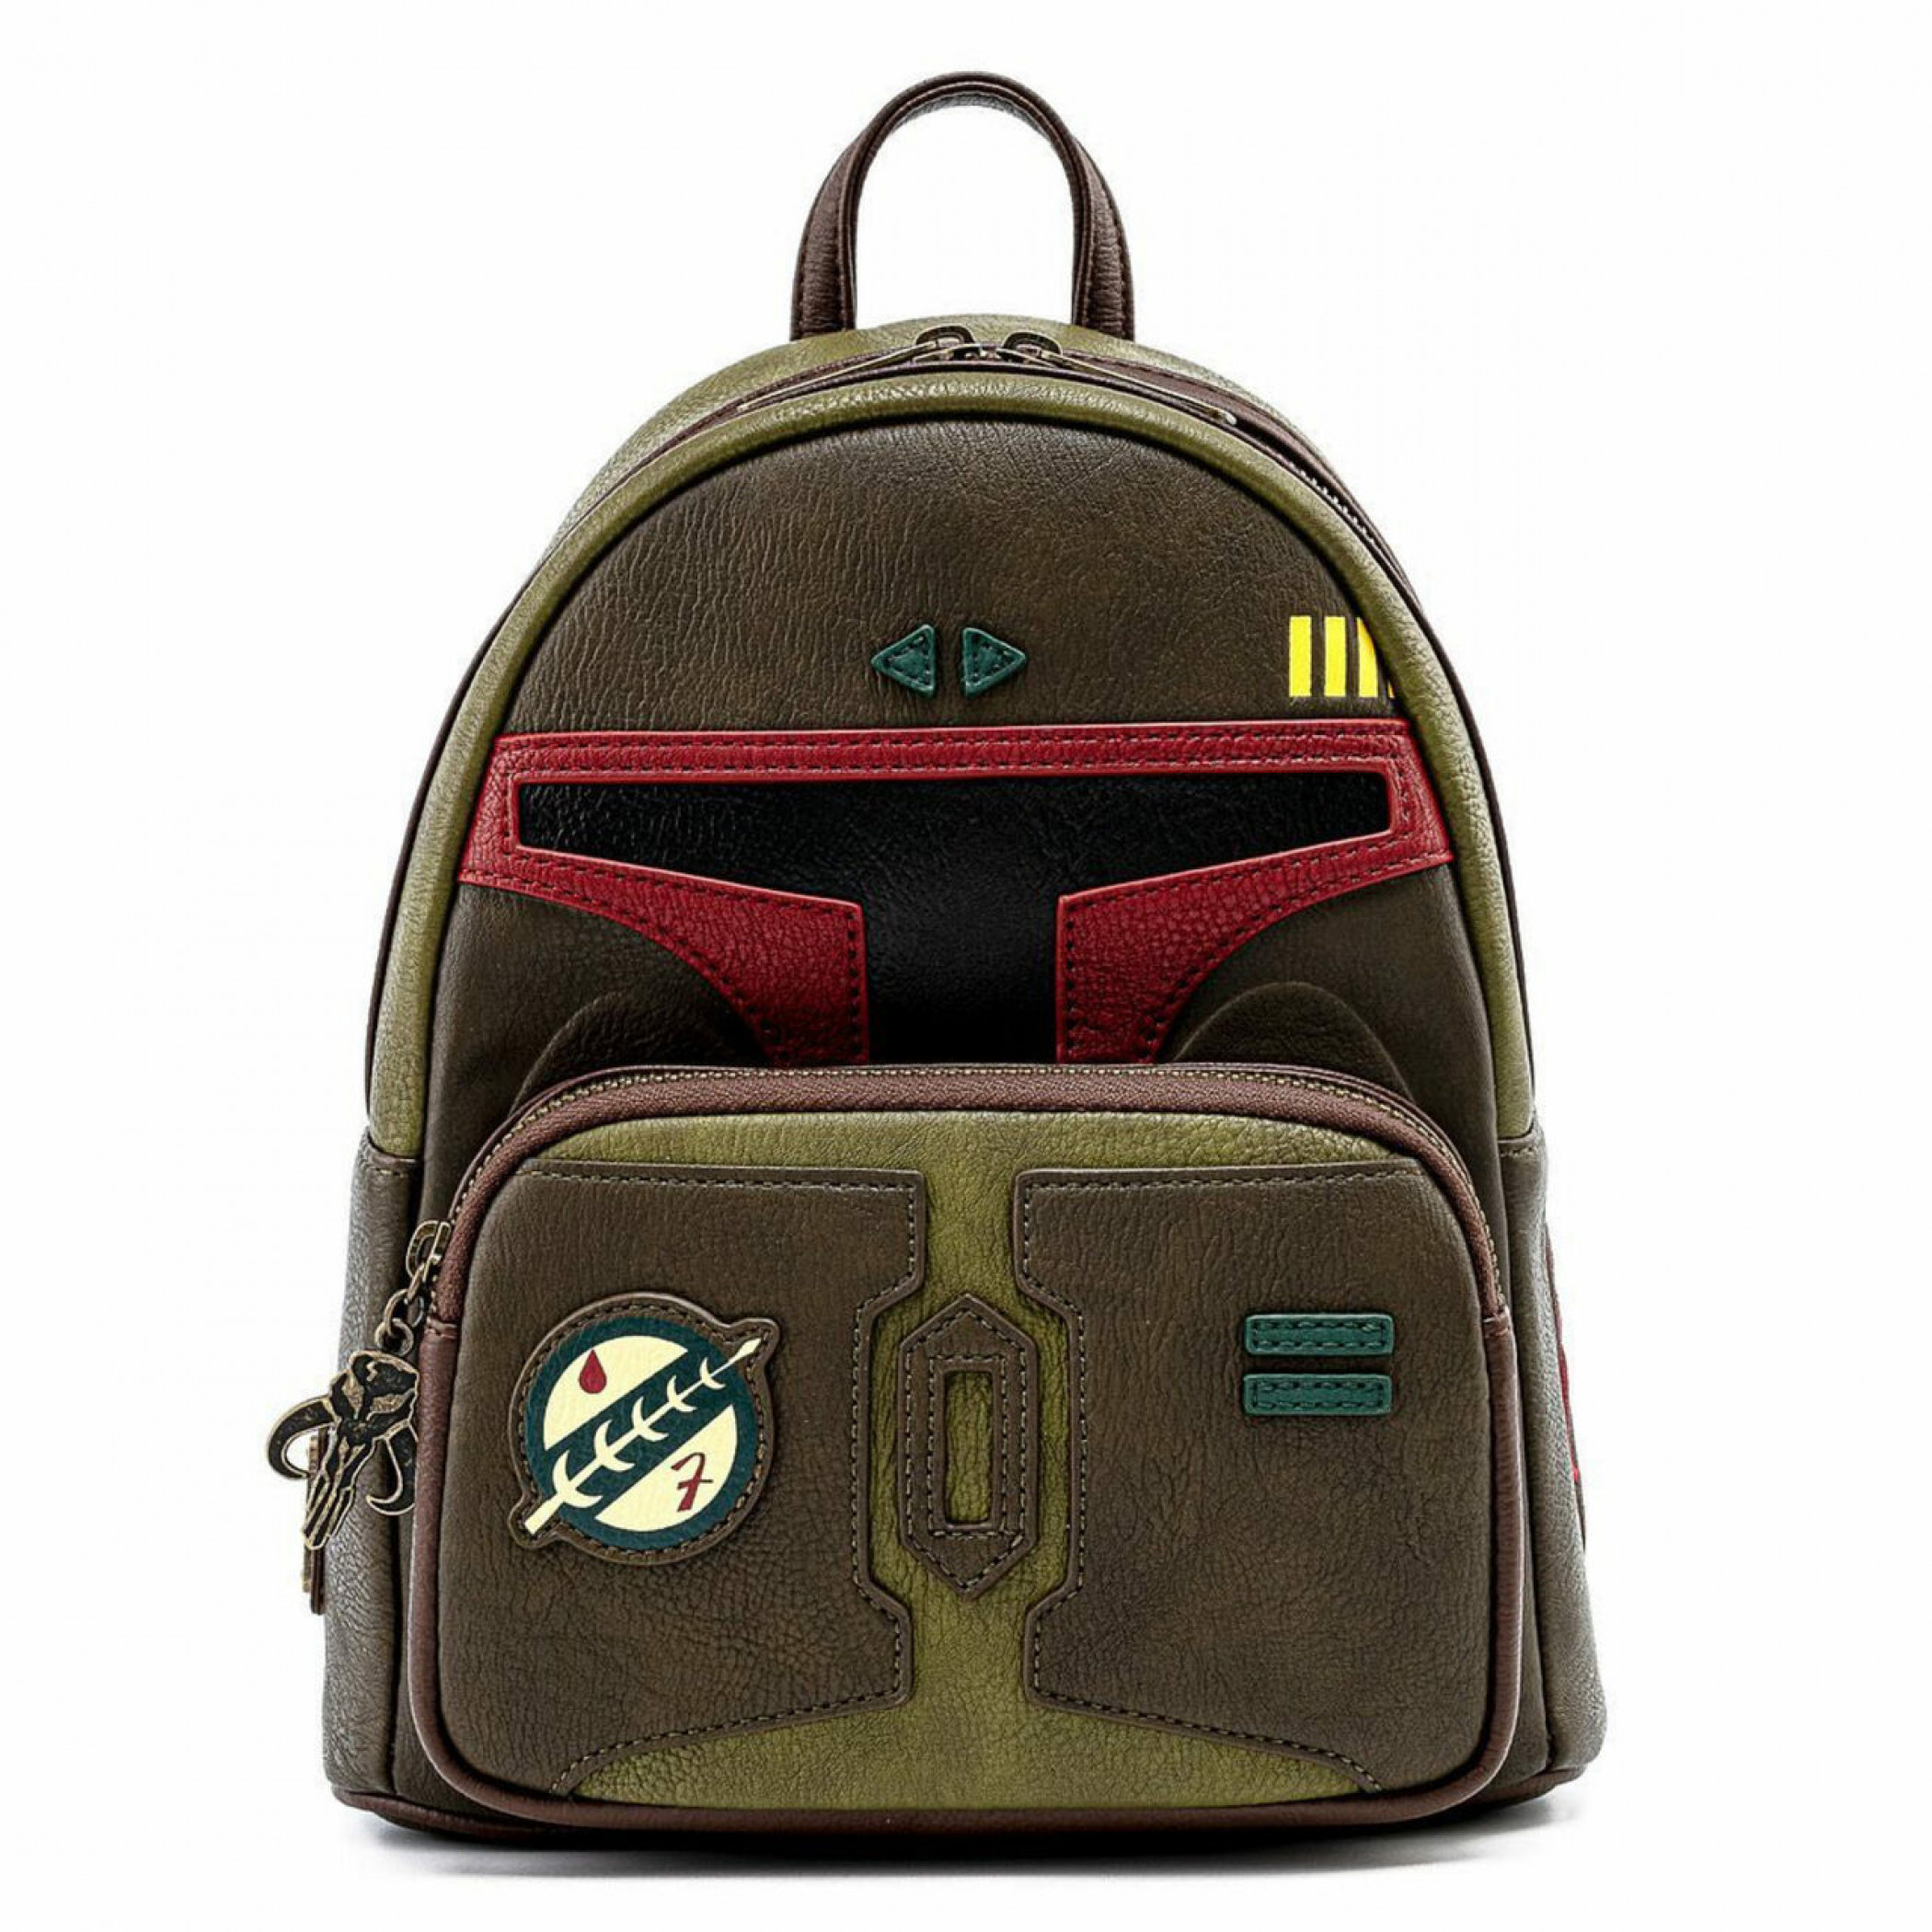 Star Wars Boba Fett Cosplay Mini Backpack by Loungefly